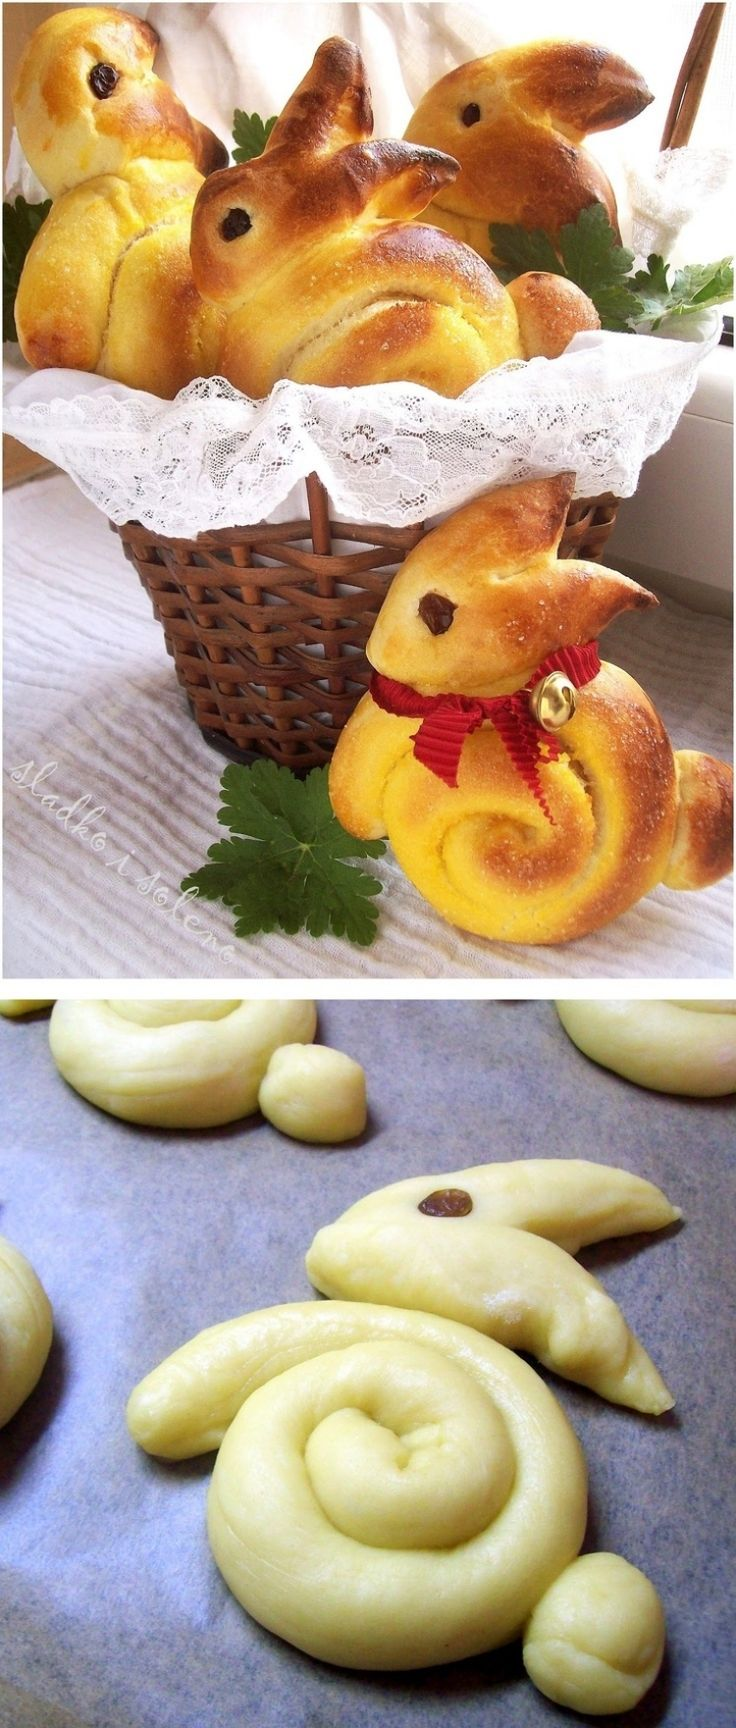 Passend zum #Osterfest: Ostergebäck in Hasenform backen #Osteridee